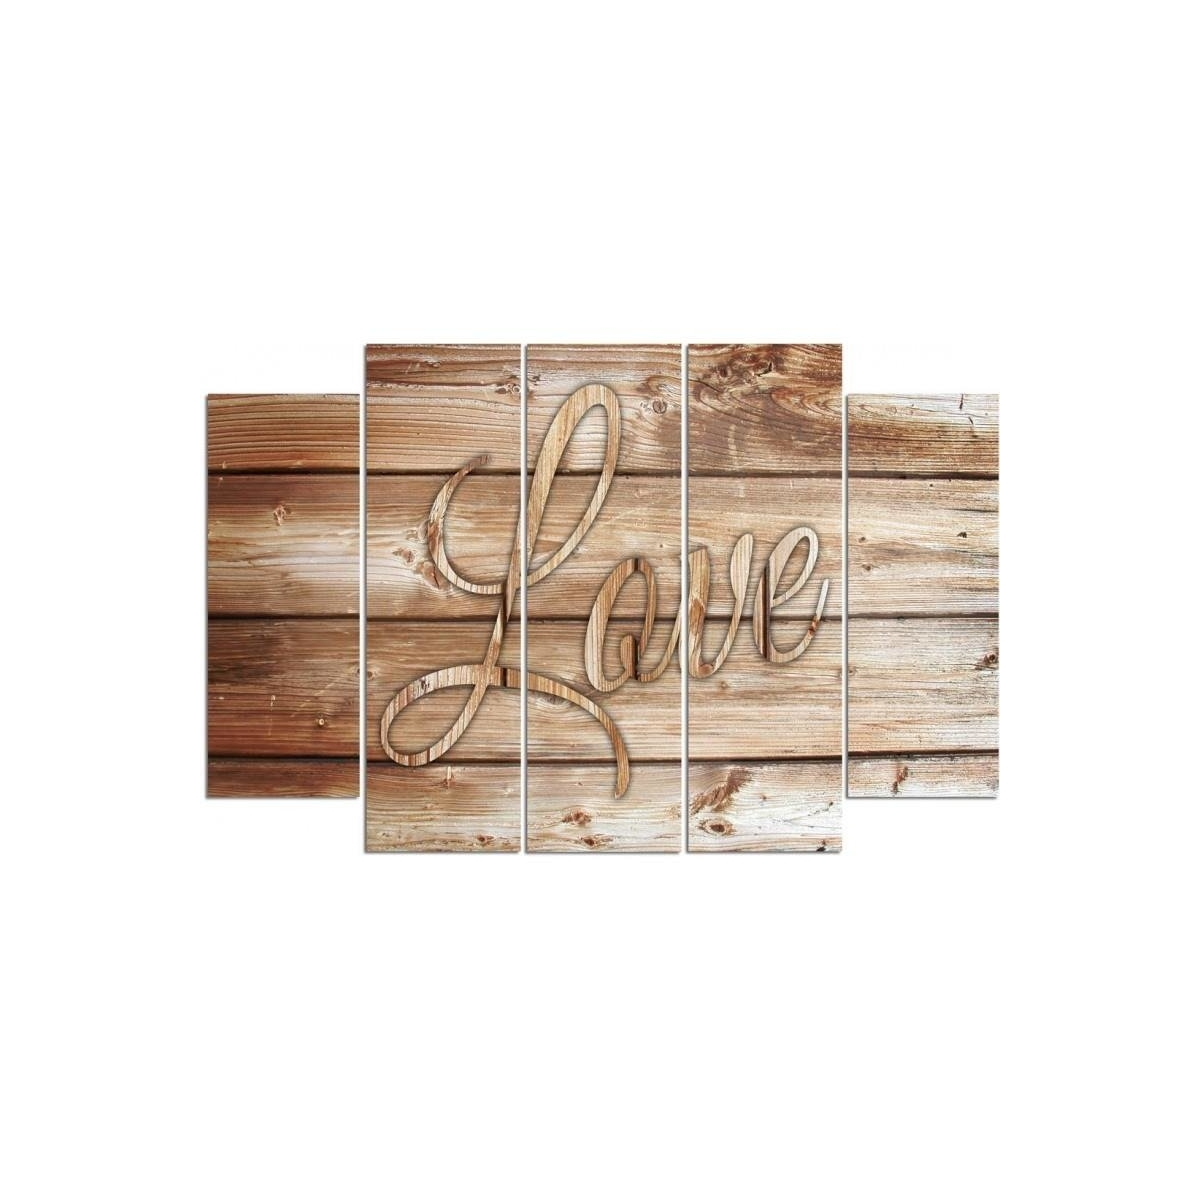 Five Part Picture On Canvas, Pentaptych, Type B, Inscription Love On Brown Boards100x150